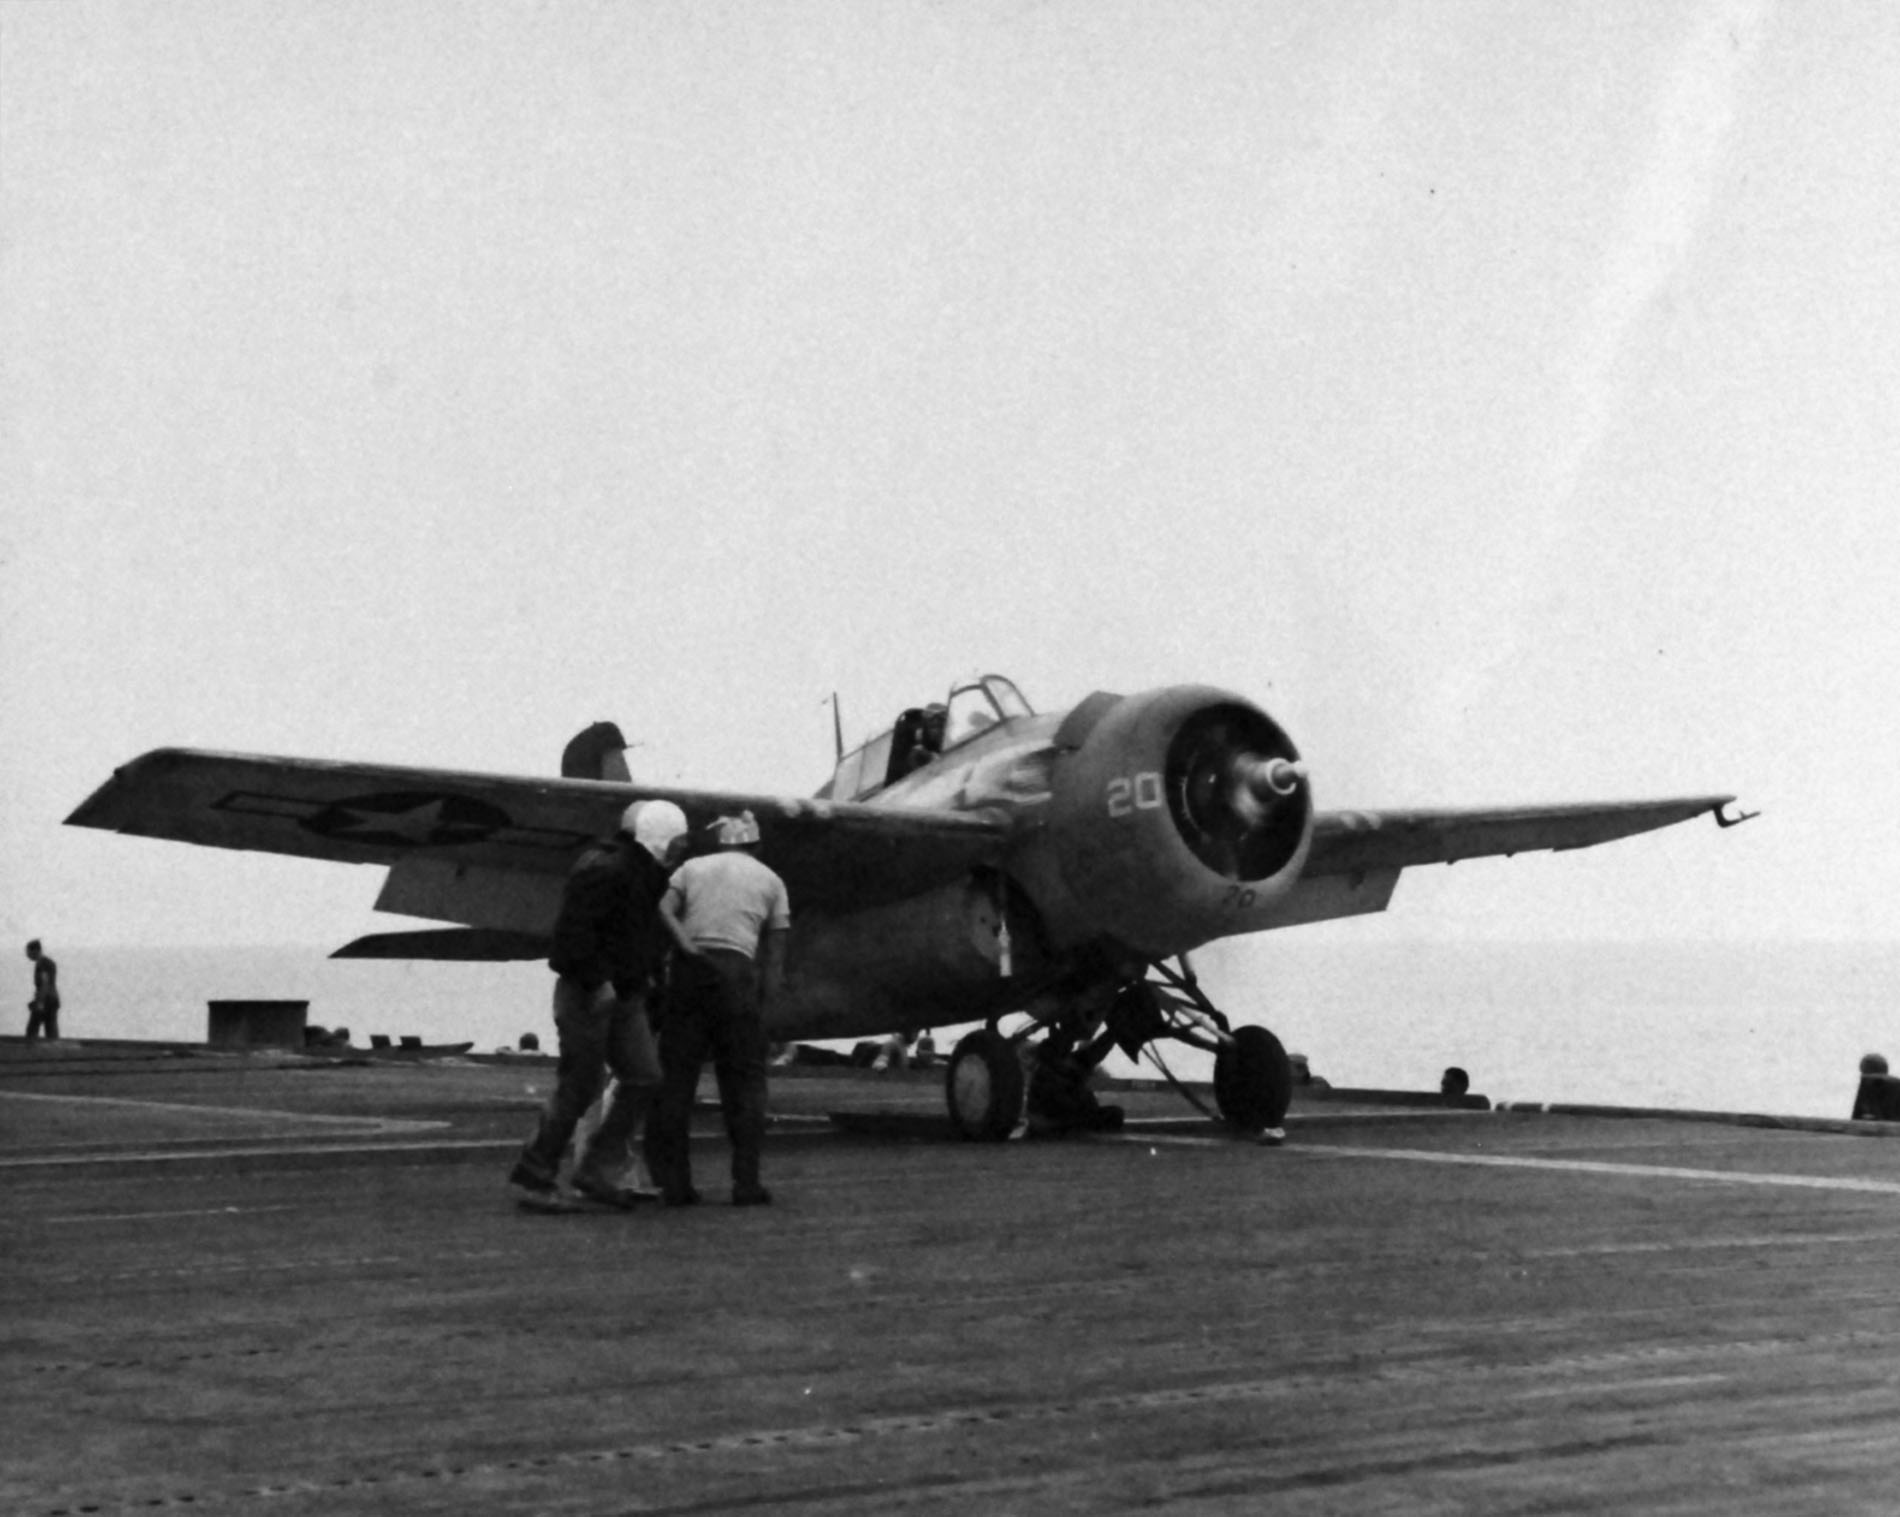 FM 2 Wildcat White 20 being readied for catapult launch 01